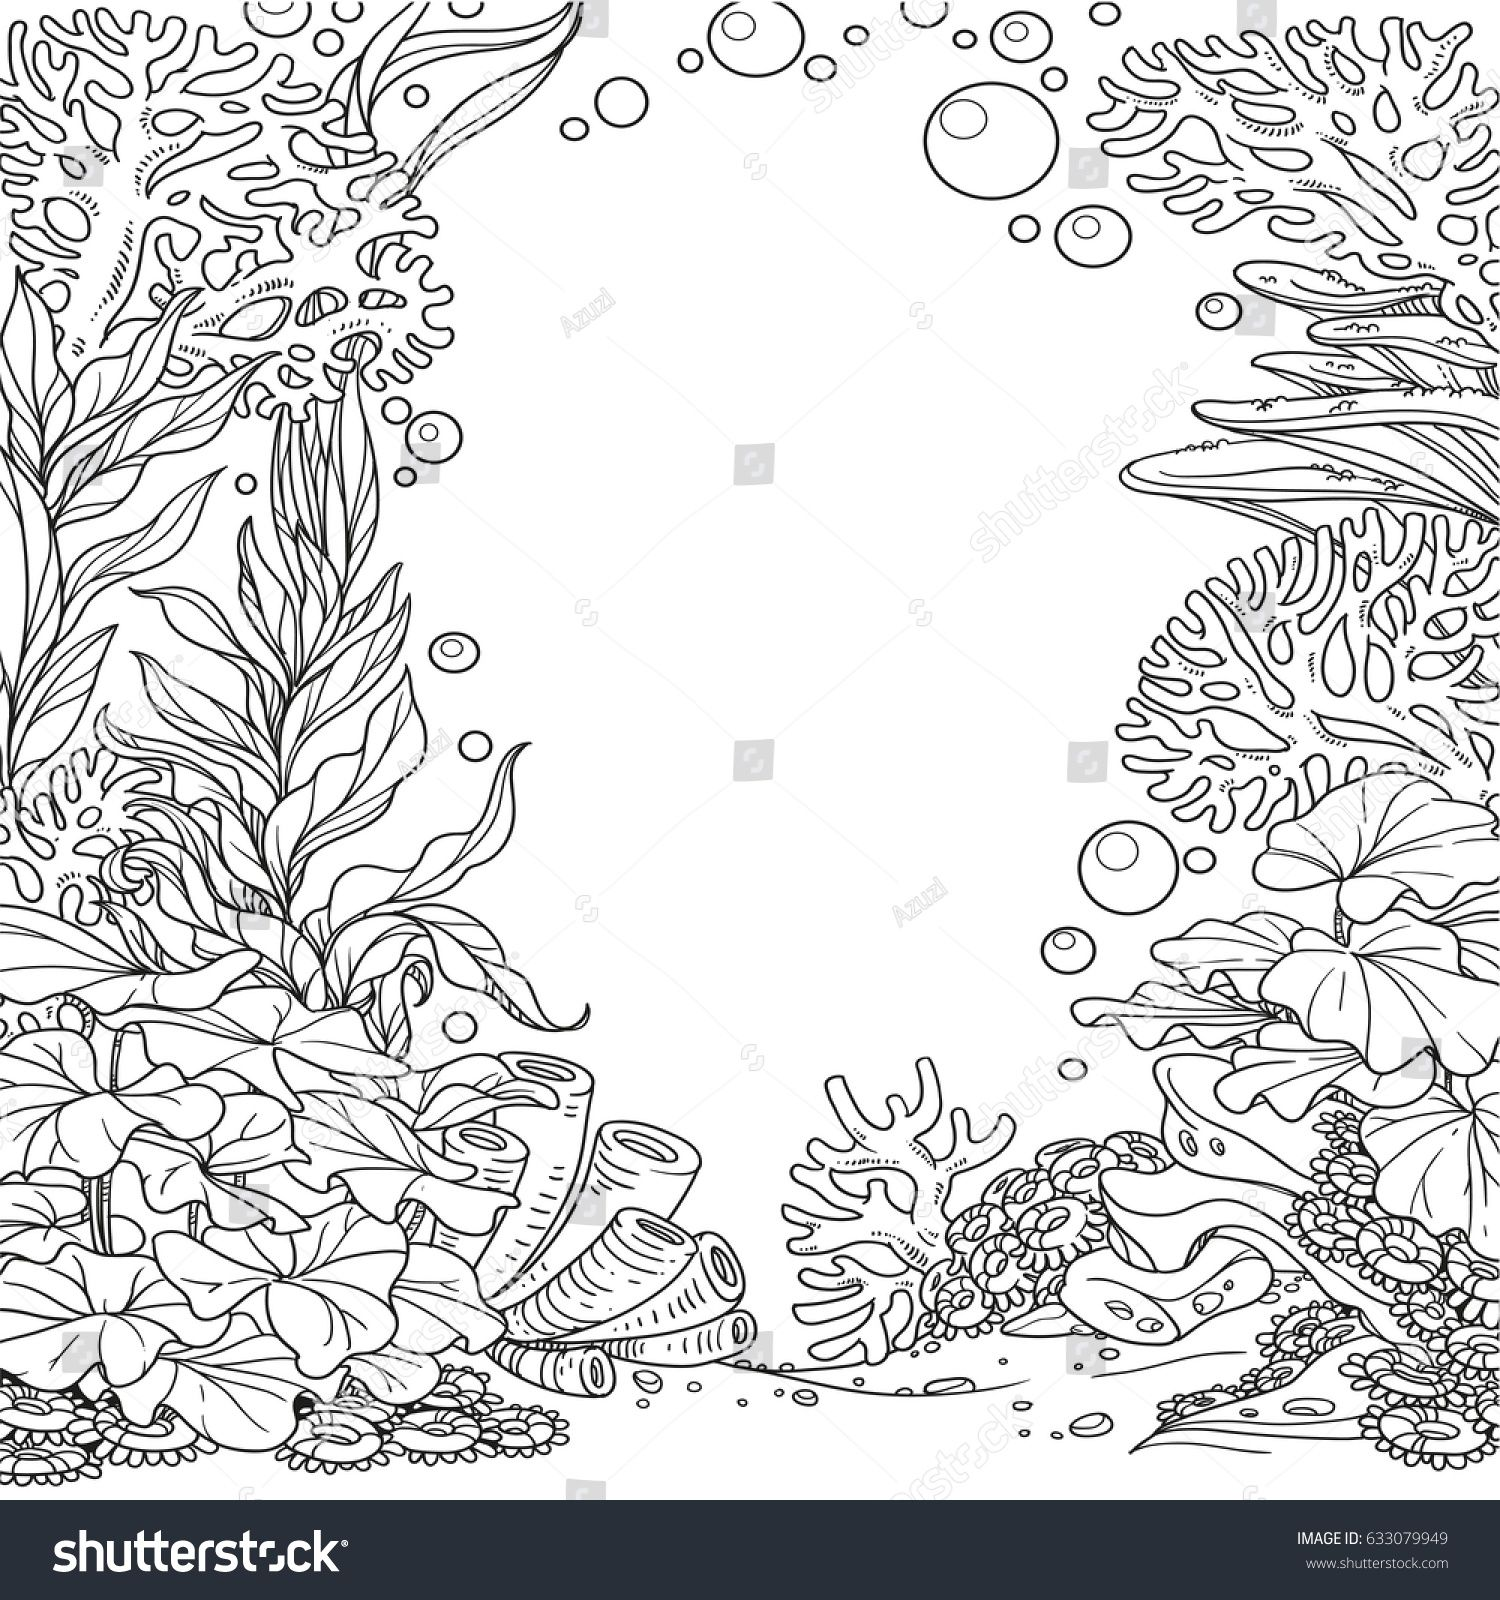 Underwater World With Corals Seaweed And Anemones Outlined